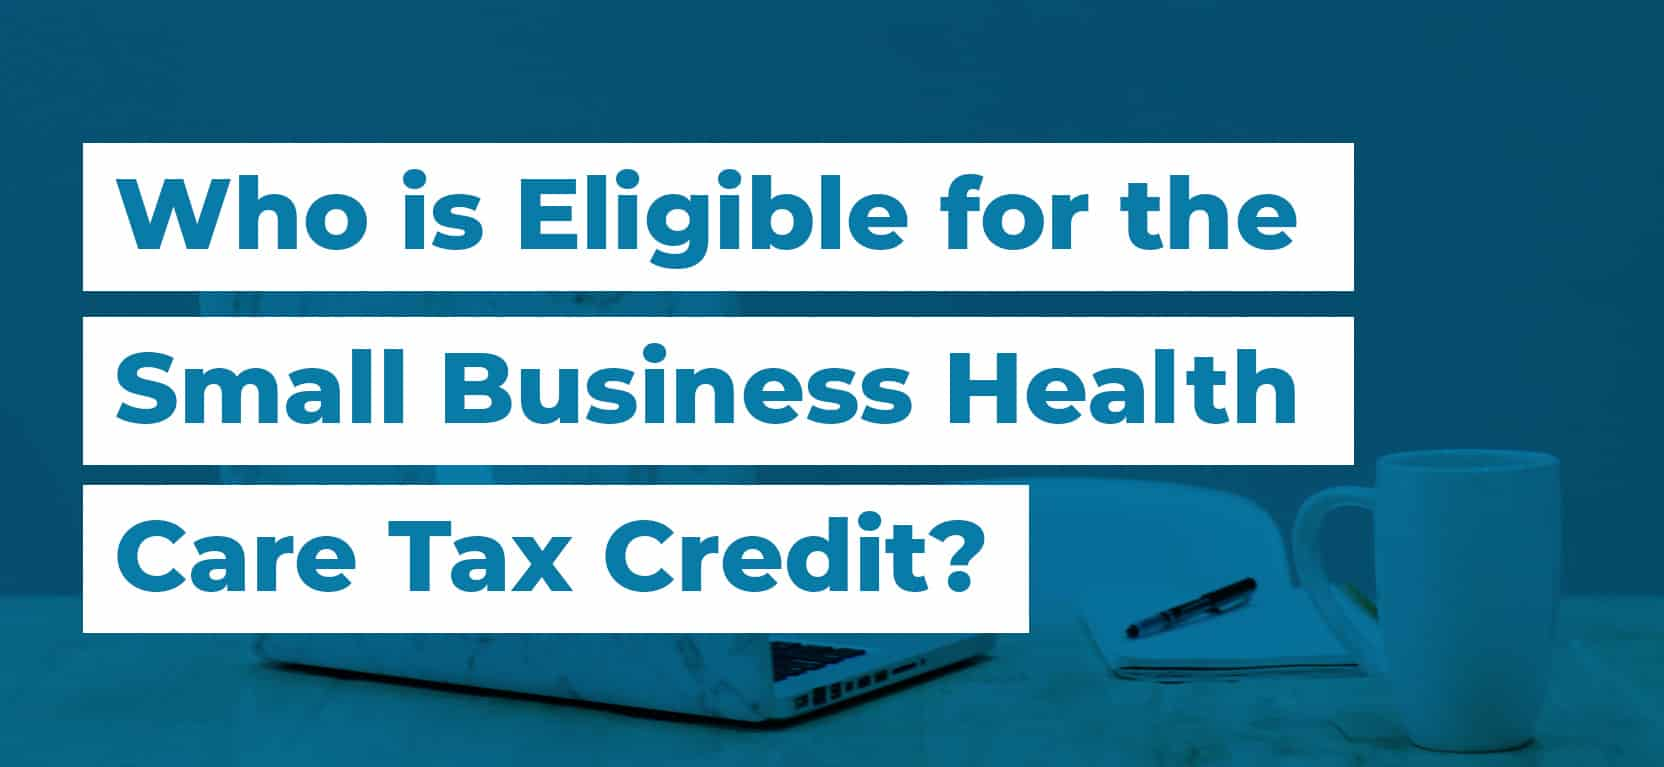 48 Who is Eligible for the Small Business Health Care Tax Credit3